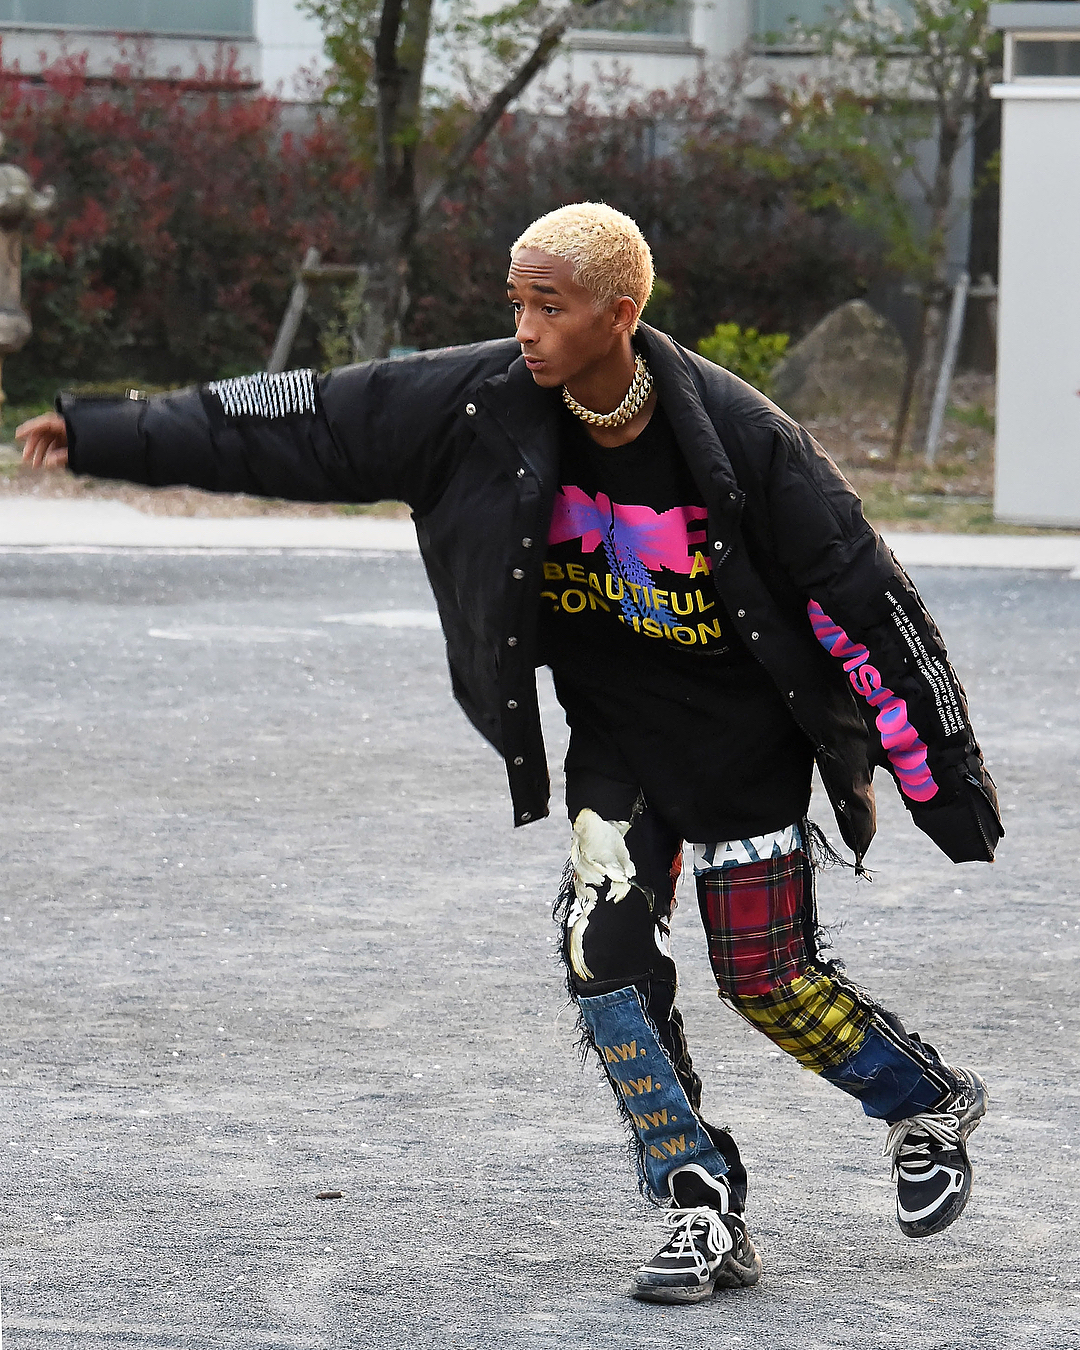 SPOTTED: Jaden Smith in MSFTSrep, G-Star RAW and Louis Vuitton